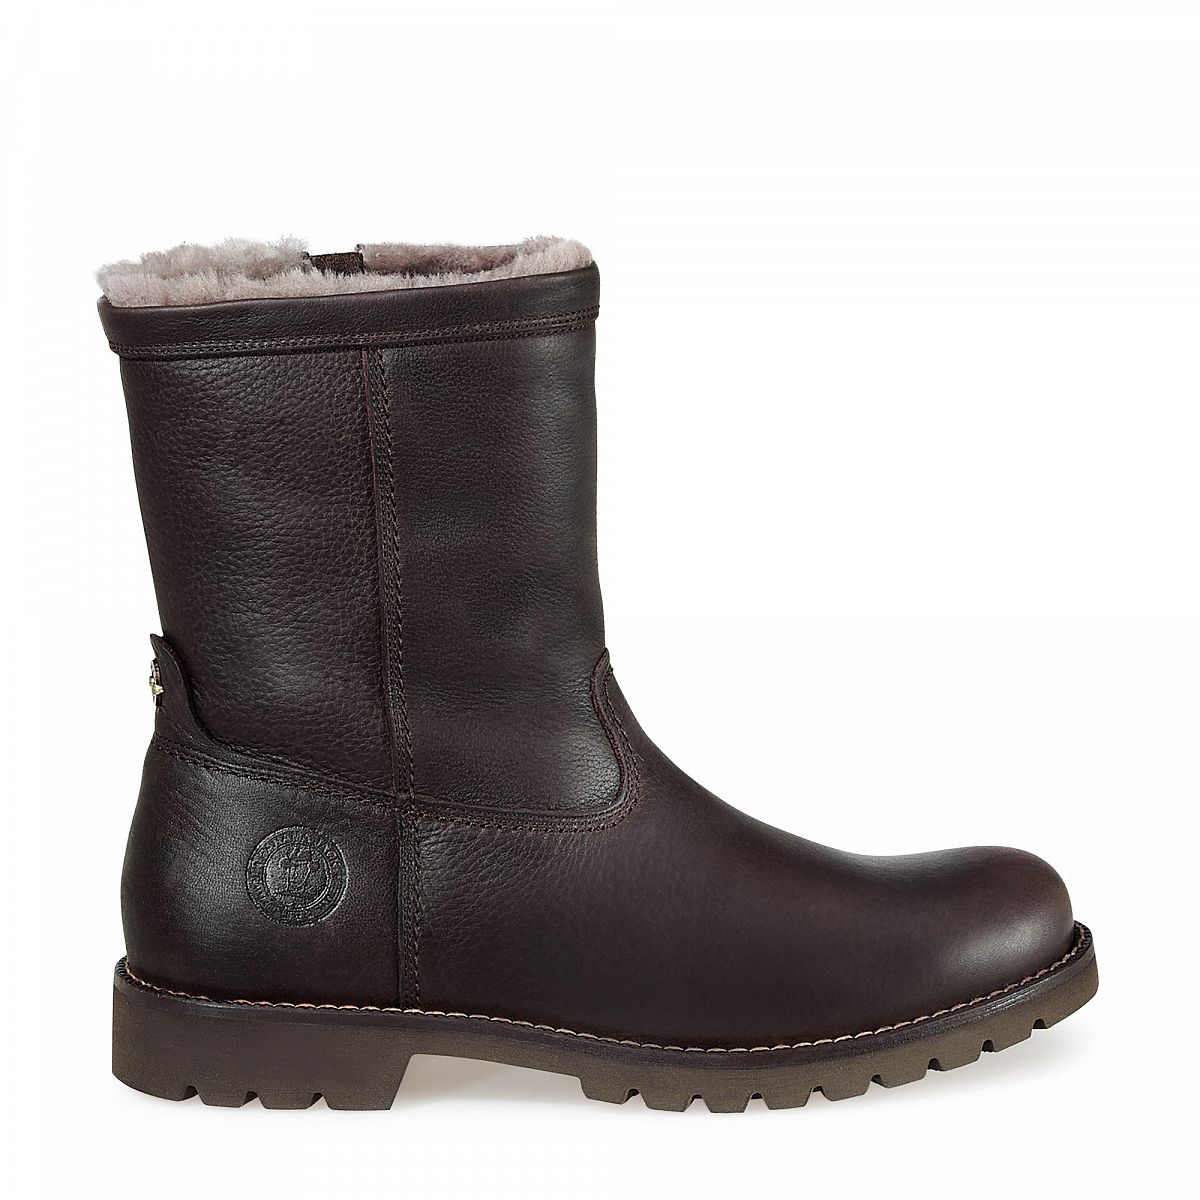 mens boots fedro igloo brown panama jack online shop. Black Bedroom Furniture Sets. Home Design Ideas